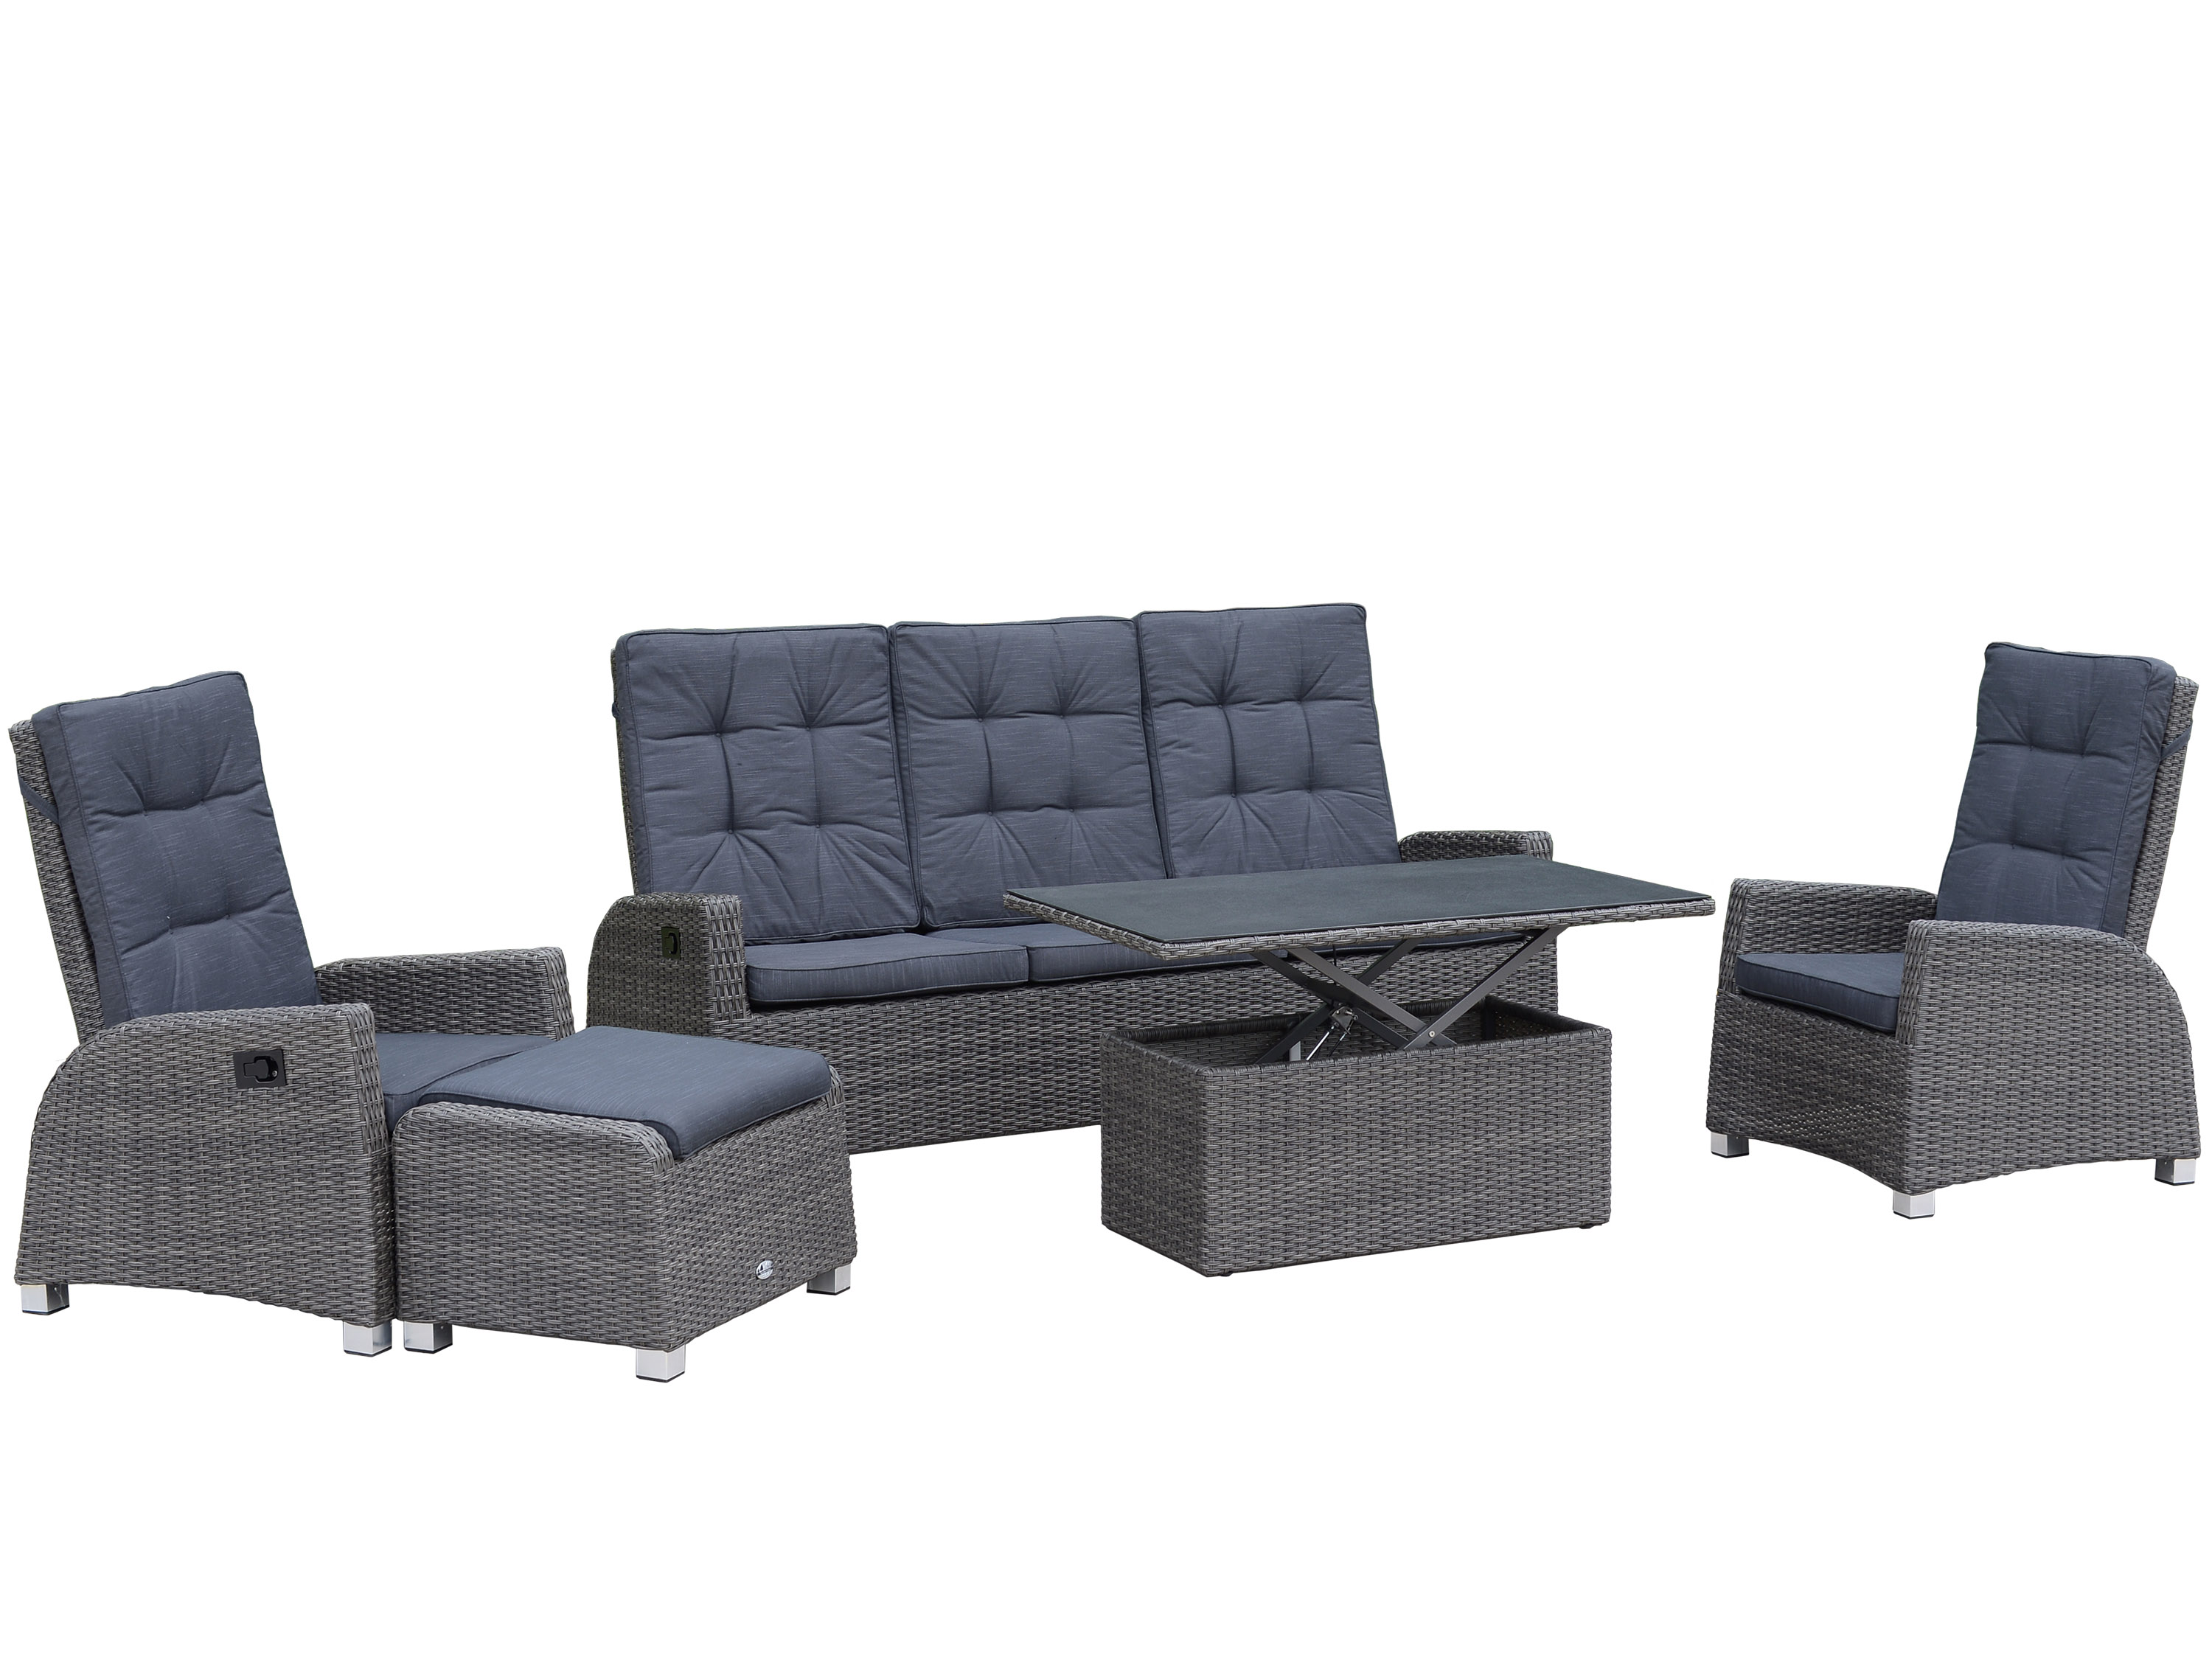 multifunktionale lounge gruppe valencia 5 teilig gartenm bel l nse. Black Bedroom Furniture Sets. Home Design Ideas